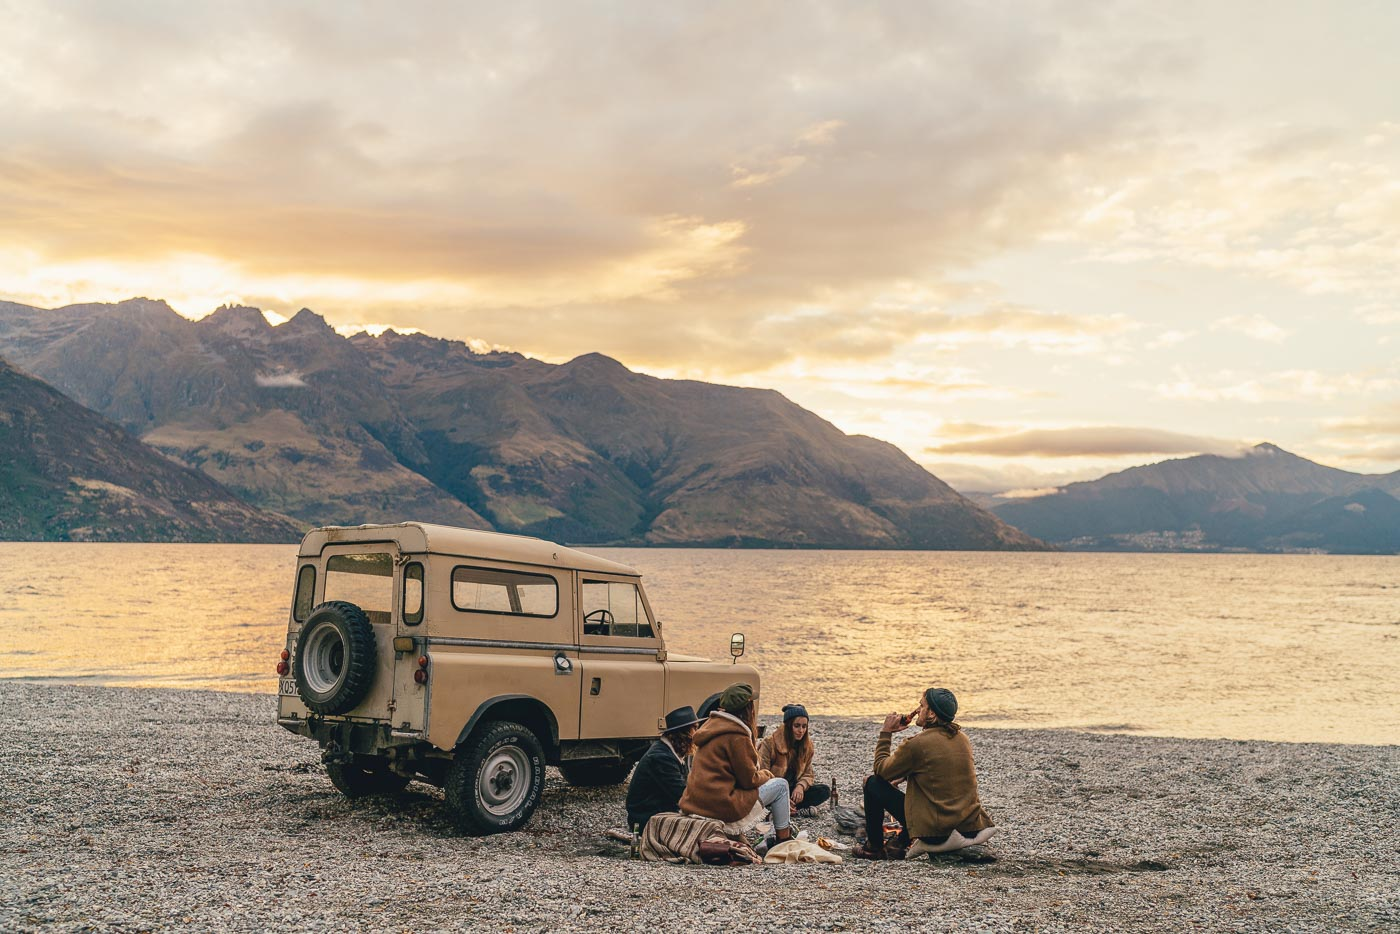 Enjoying beers next to a land rover at sunset in Queenstown, New Zealand